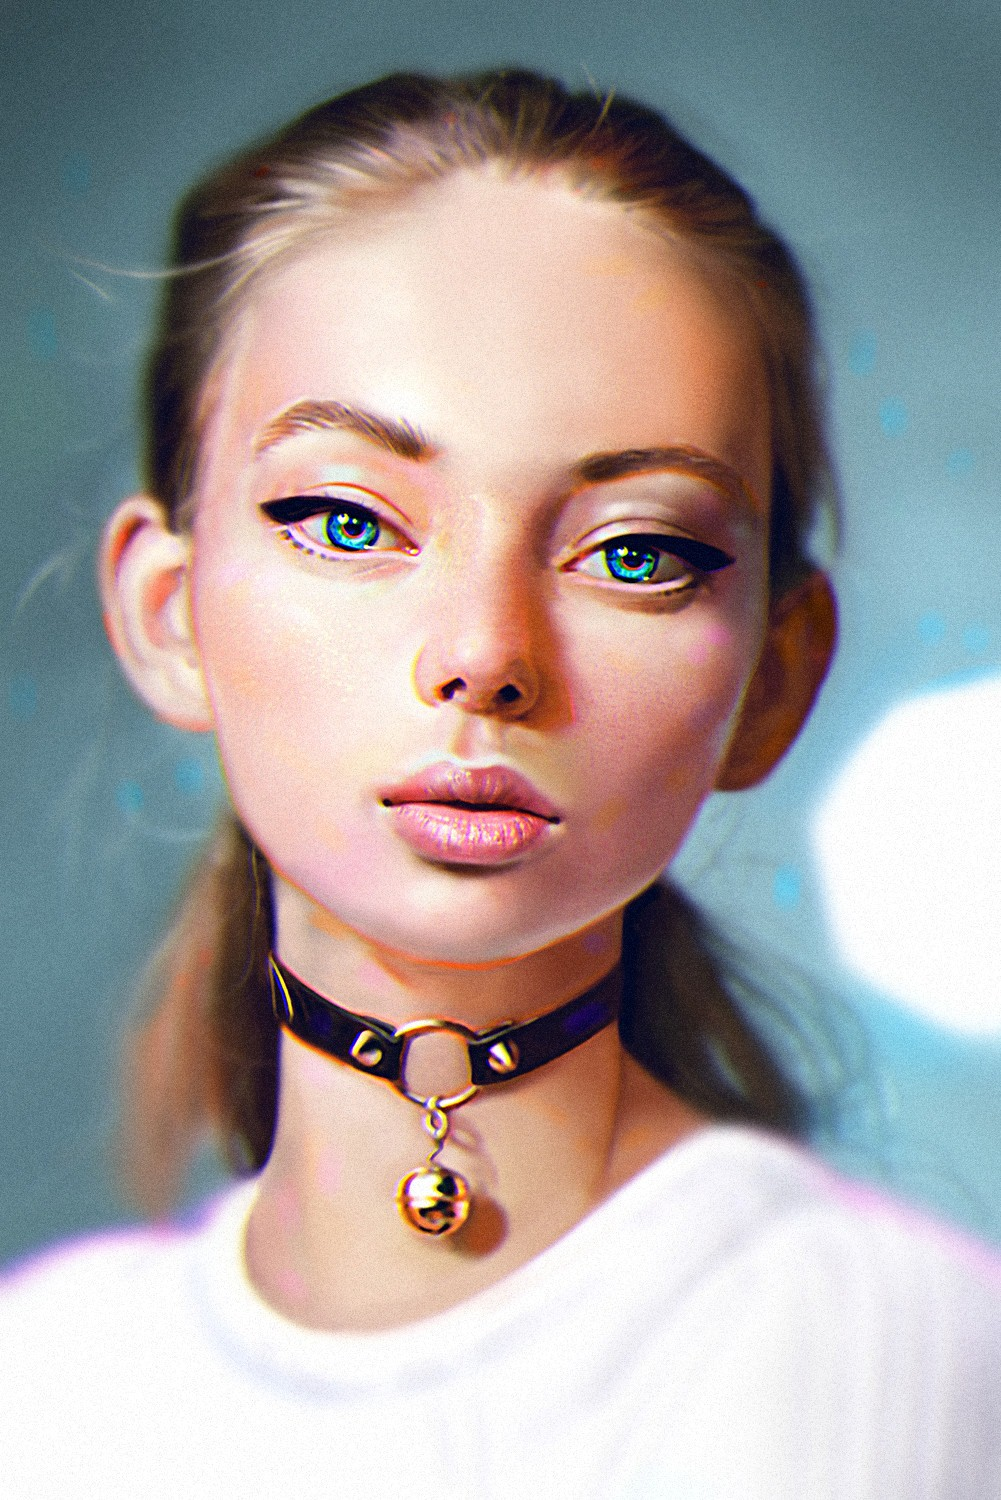 Rene Gorecki | Paintable.cc Digital Painting Inspiration - Learn the Art of Digital Painting! #digitalpainting #digitalart